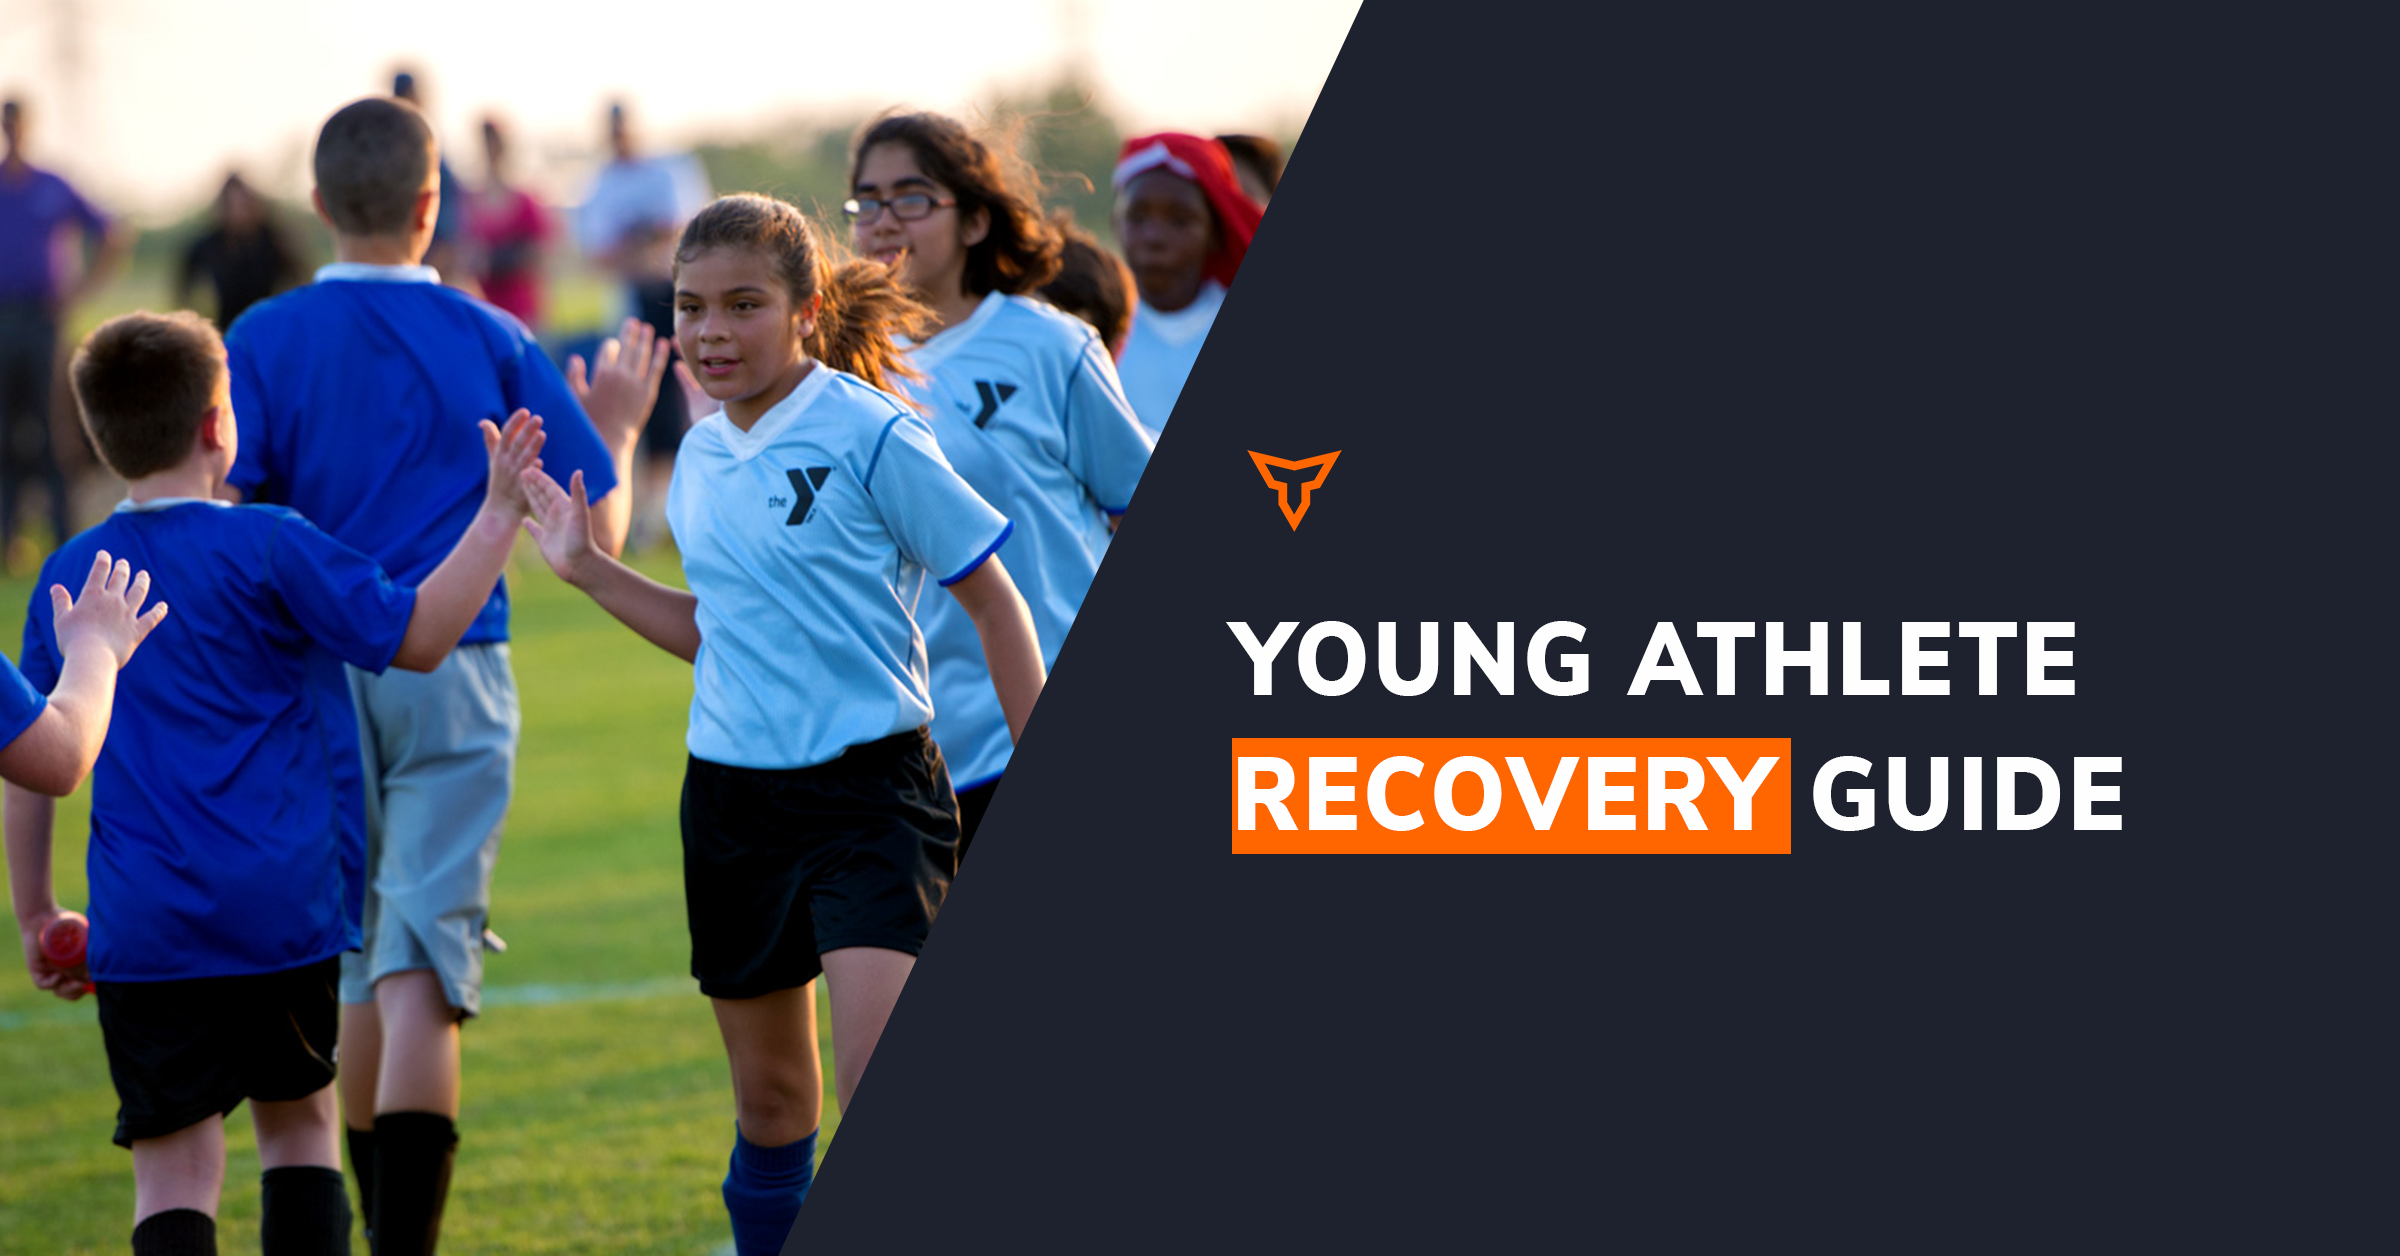 eBook young athlete card image